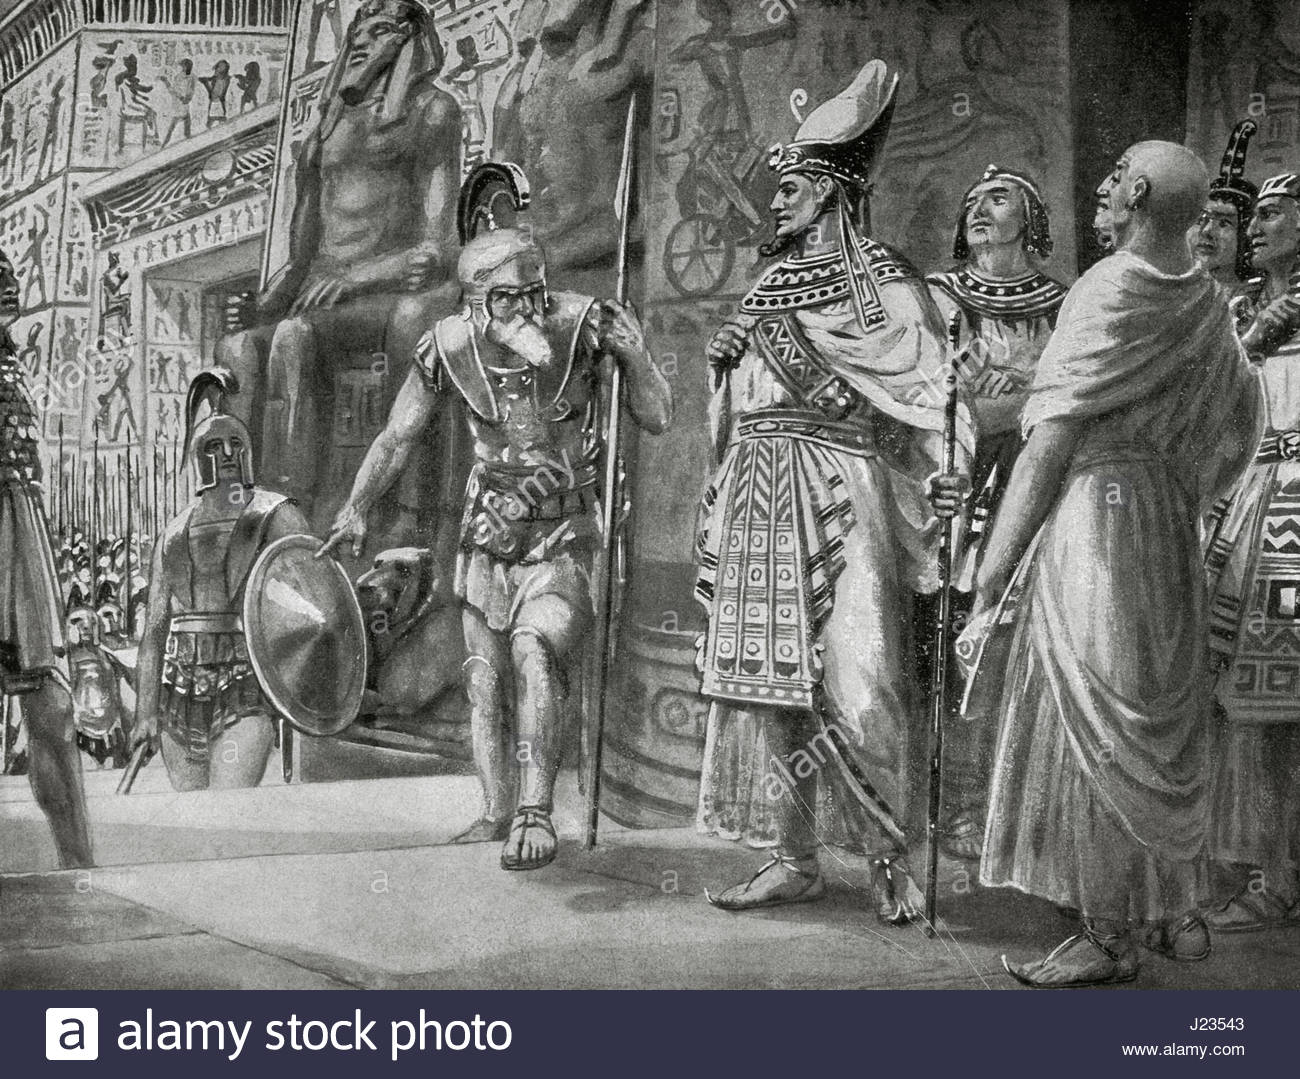 Agesilaus II (c. 444- c. 360 B.C.), king of Sparta (400-360 B.C.), and the  Athenian general Chabrias with mercenaries come into help the king  Nectanebo I